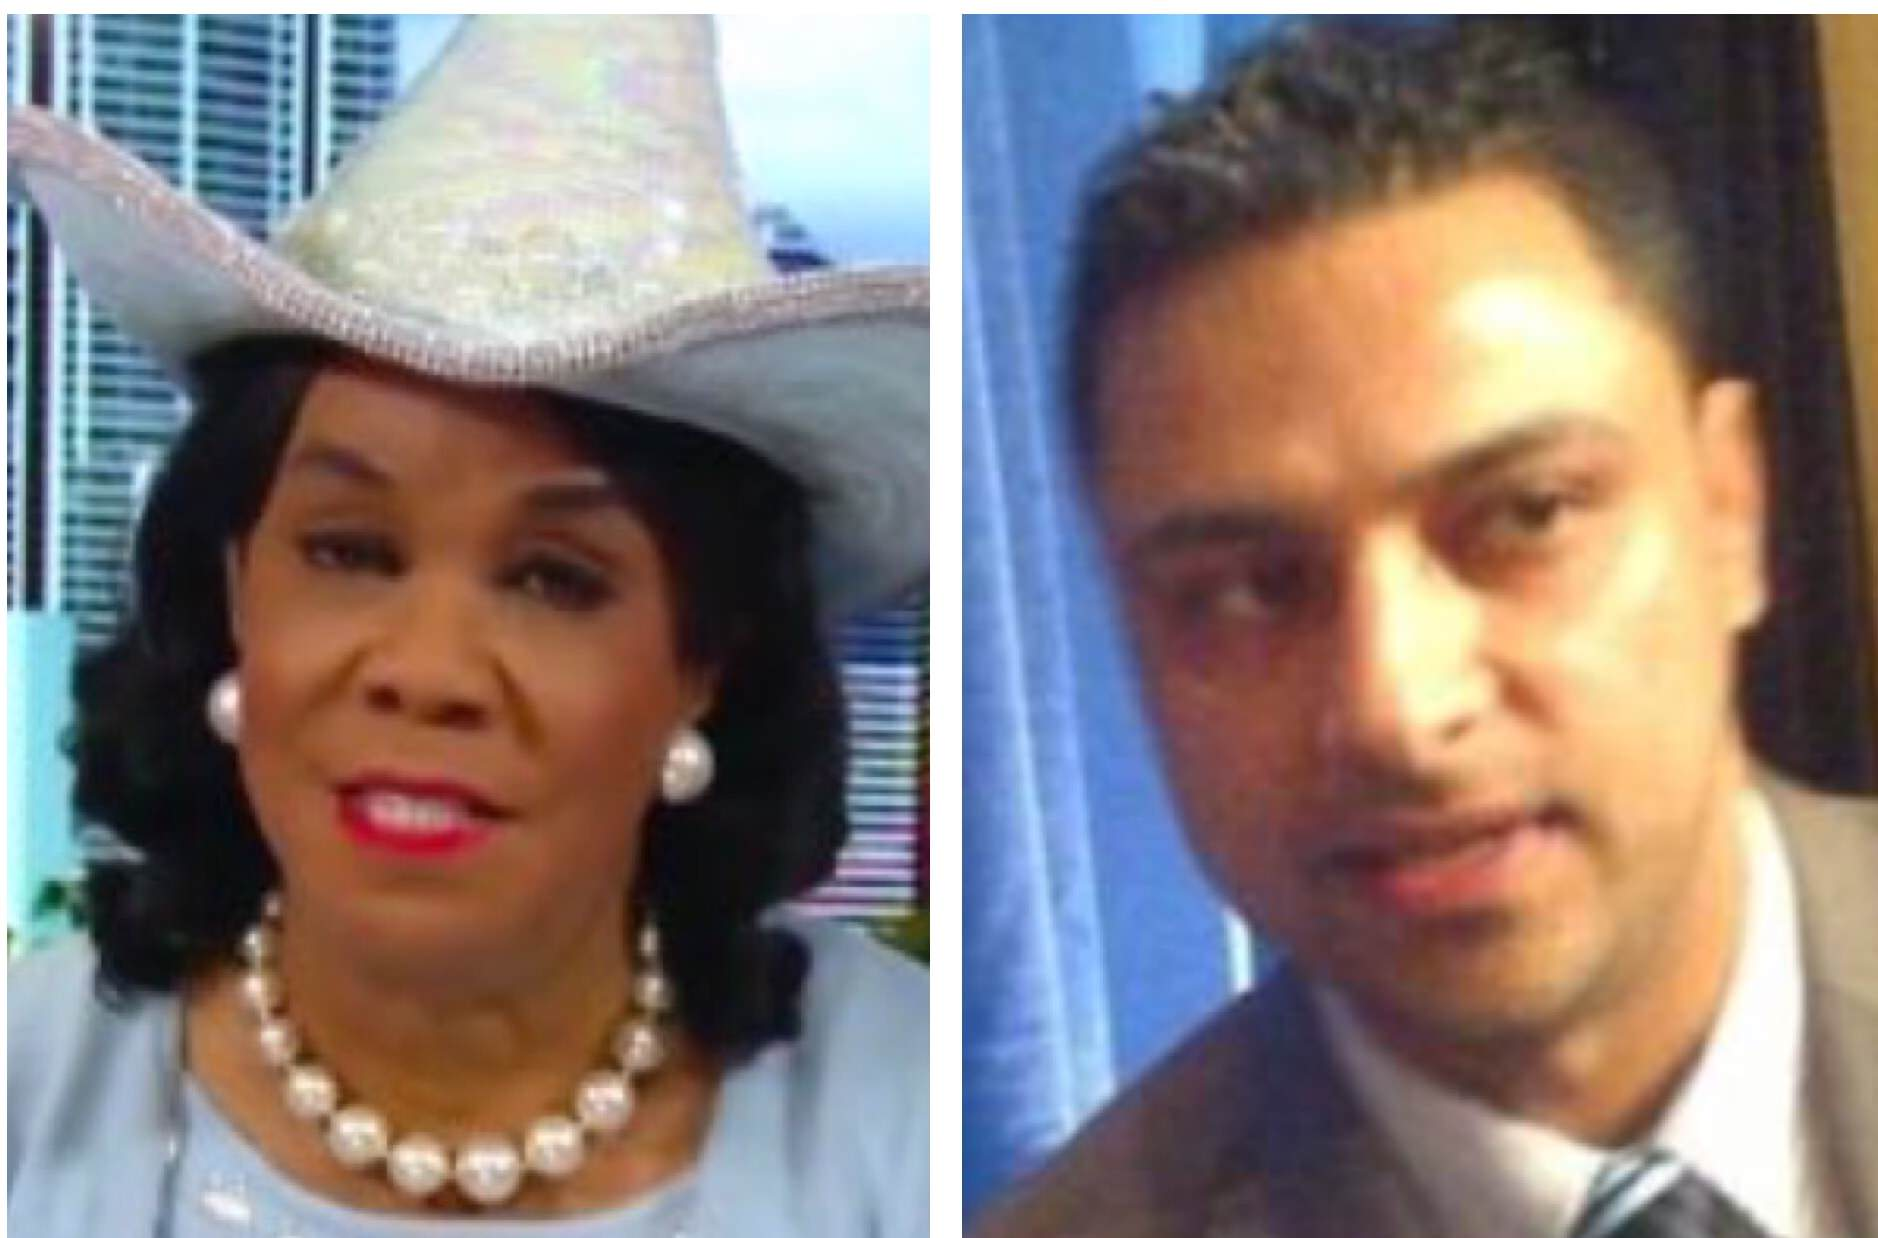 Figures. 'Rodeo Clown' Rep. Wilson Hired Criminal Imran Awan as IT Expert